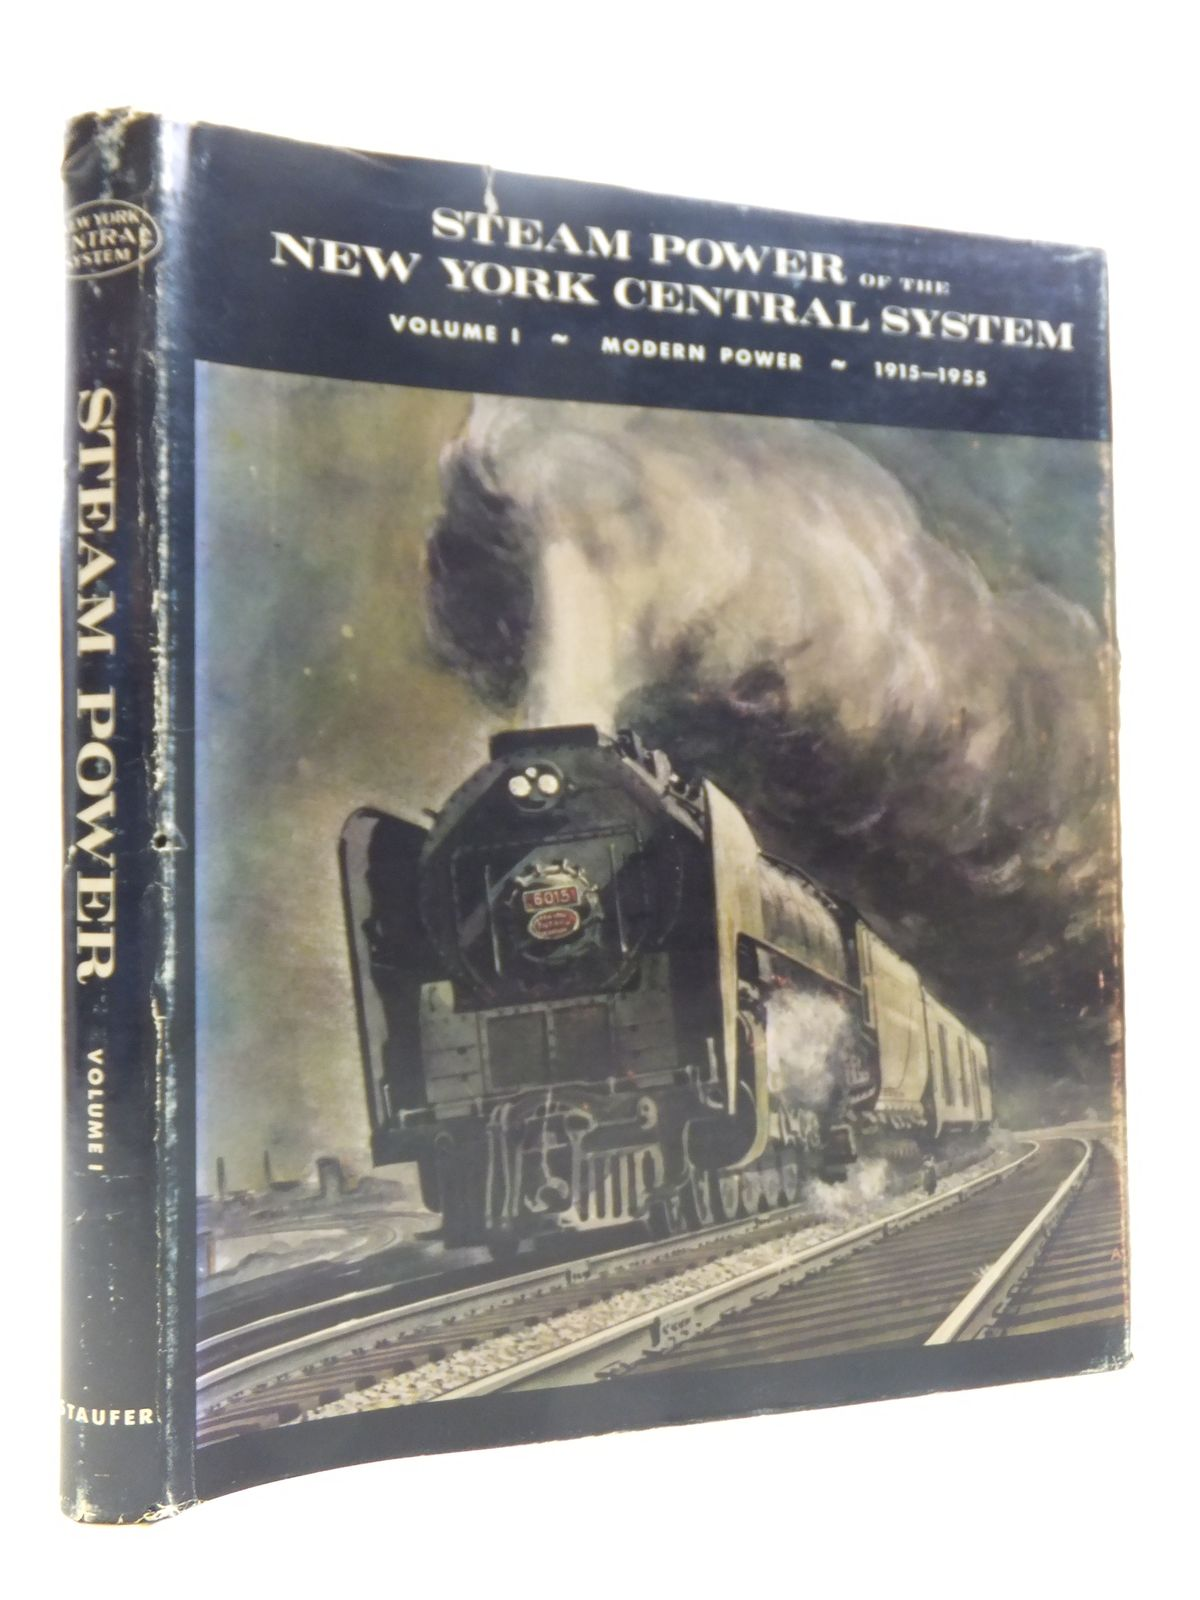 Photo of STEAM POWER OF THE NEW YORK CENTRAL SYSTEM VOLUME I MODERN POWER 1915-1955 written by Staufer, Alvin F. published by Alvin F. Staufer (STOCK CODE: 1811289)  for sale by Stella & Rose's Books